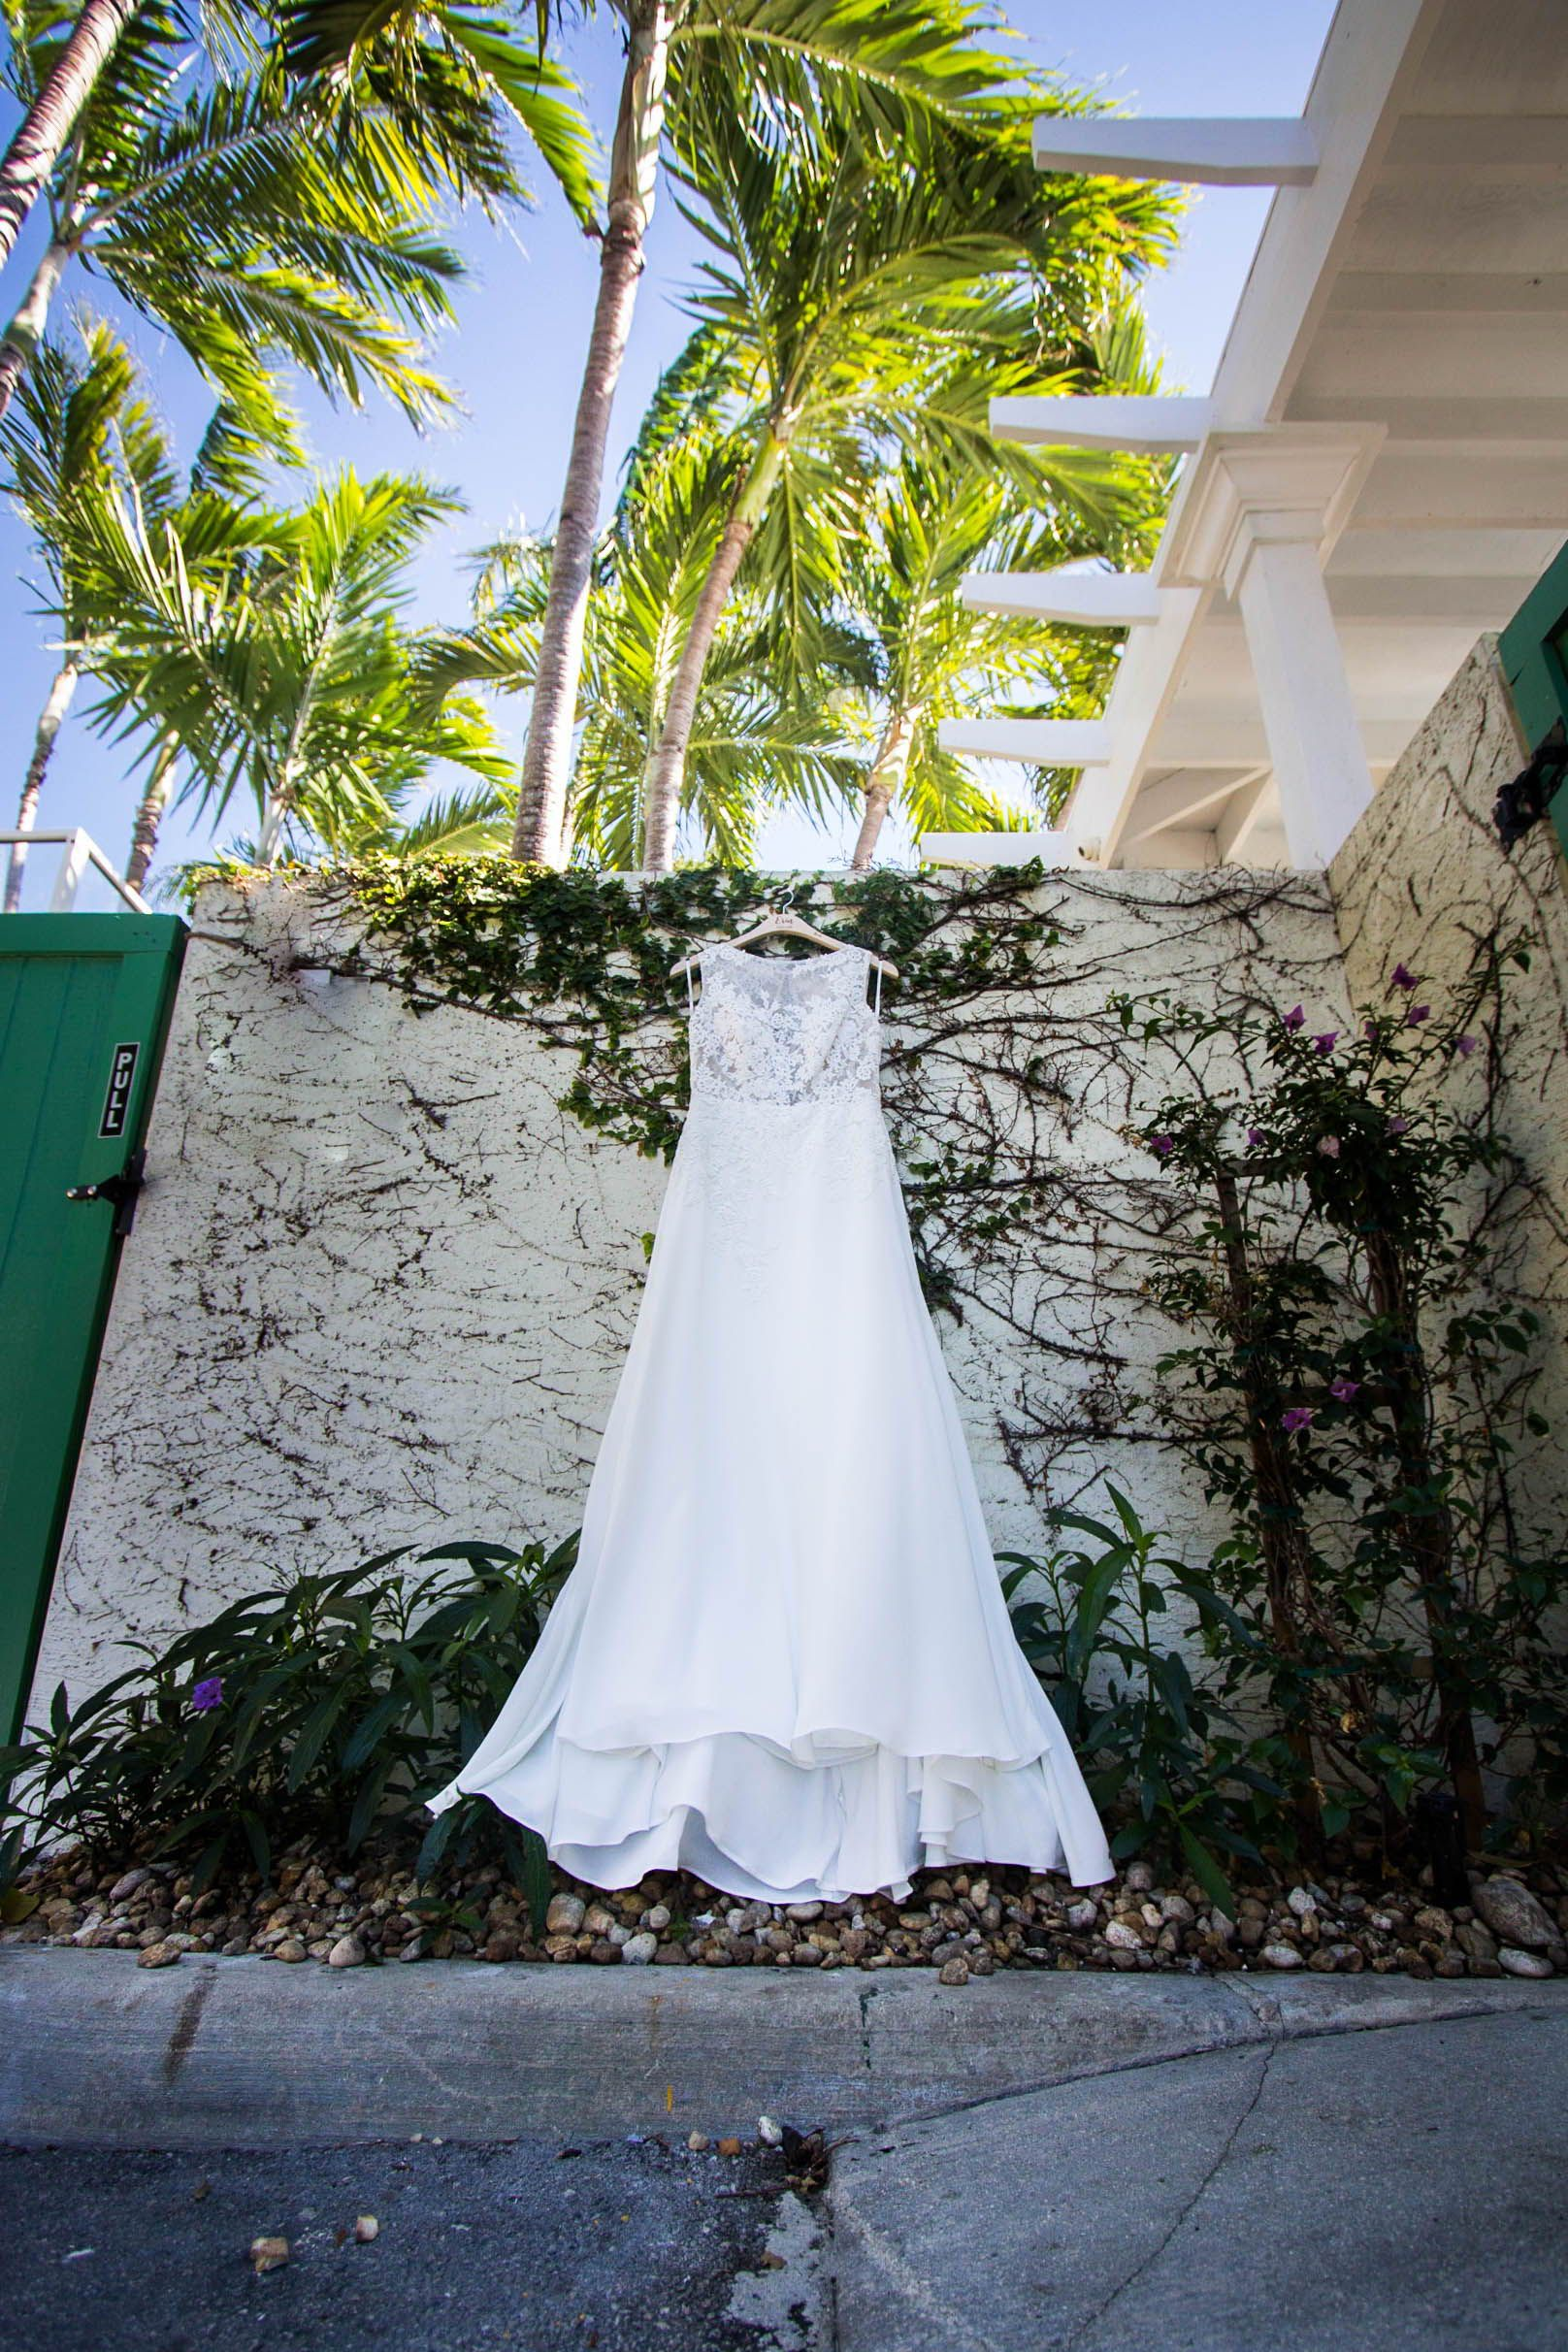 Long beach lighthouse wedding  Take in the blue skies and the palm trees overhead with a wedding